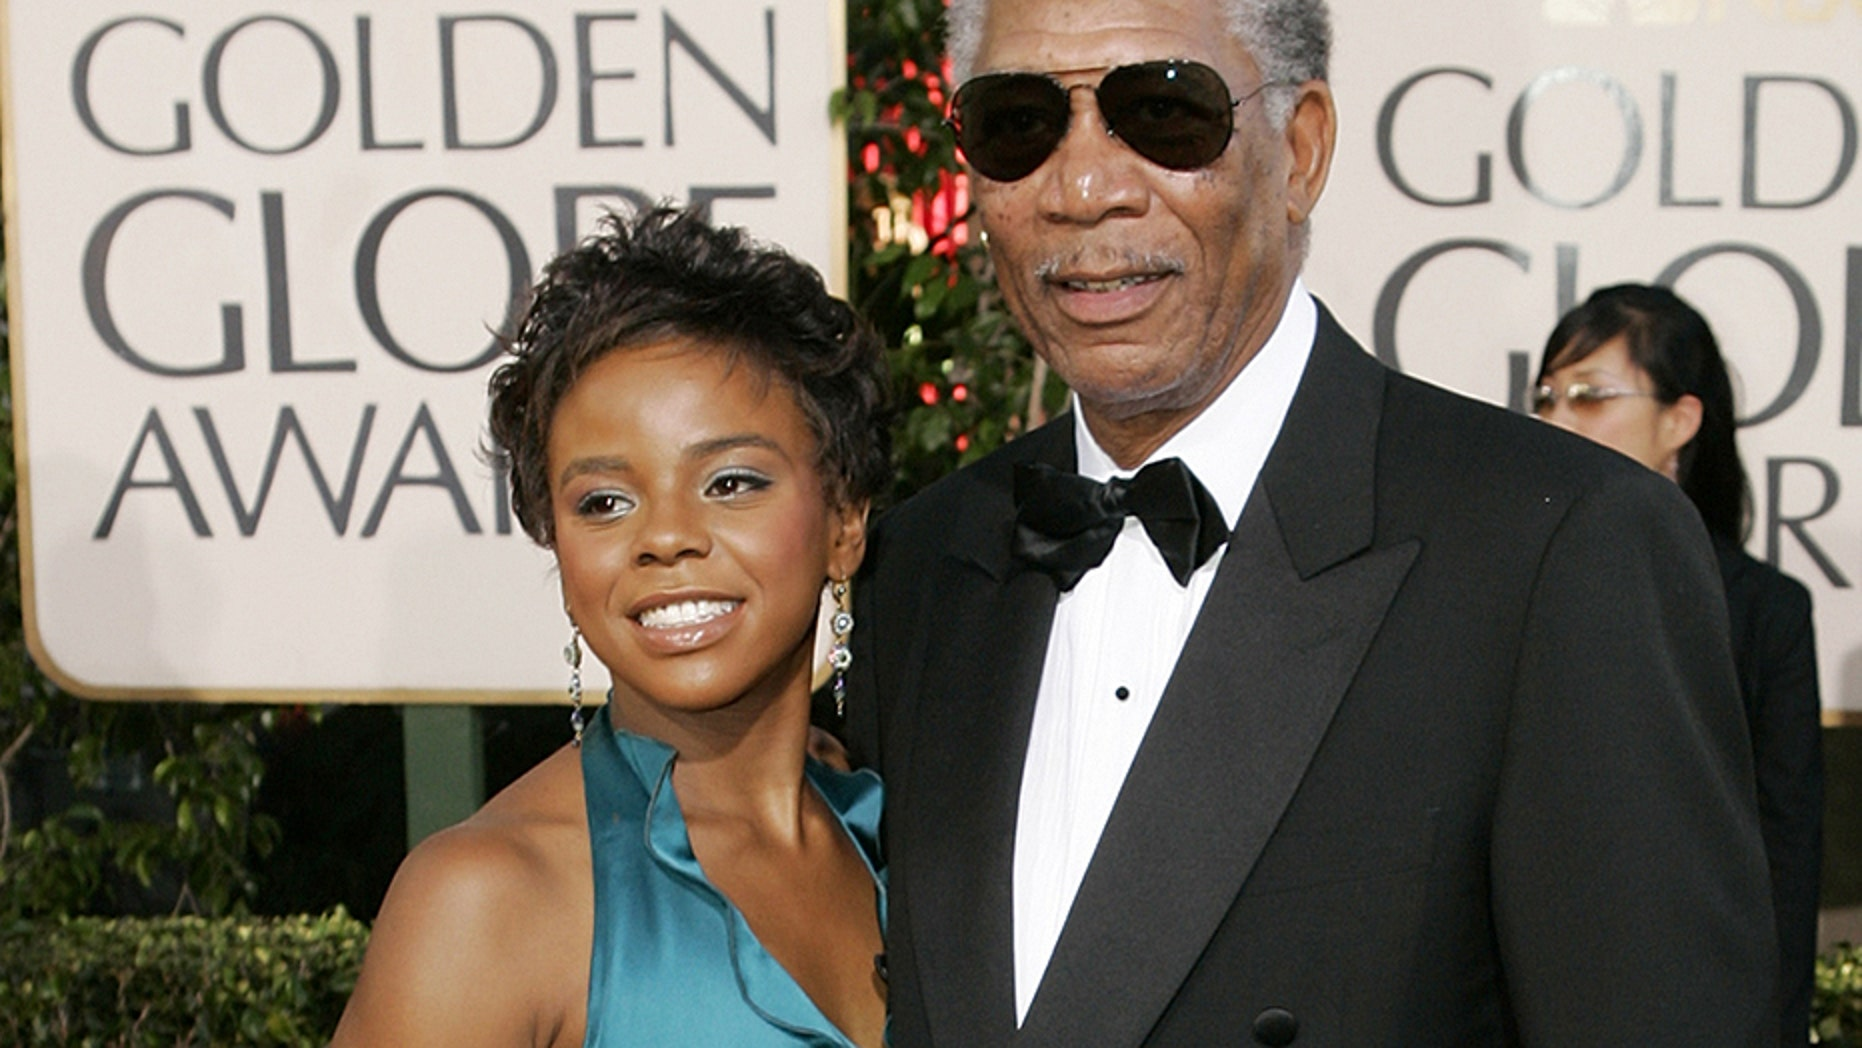 """E'Dena Hines' [left] boyfriend, who is accused of killing her, said in court that the woman and her step-grandfather, Morgan Freeman, had an """"inappropriate sexual relationship."""""""